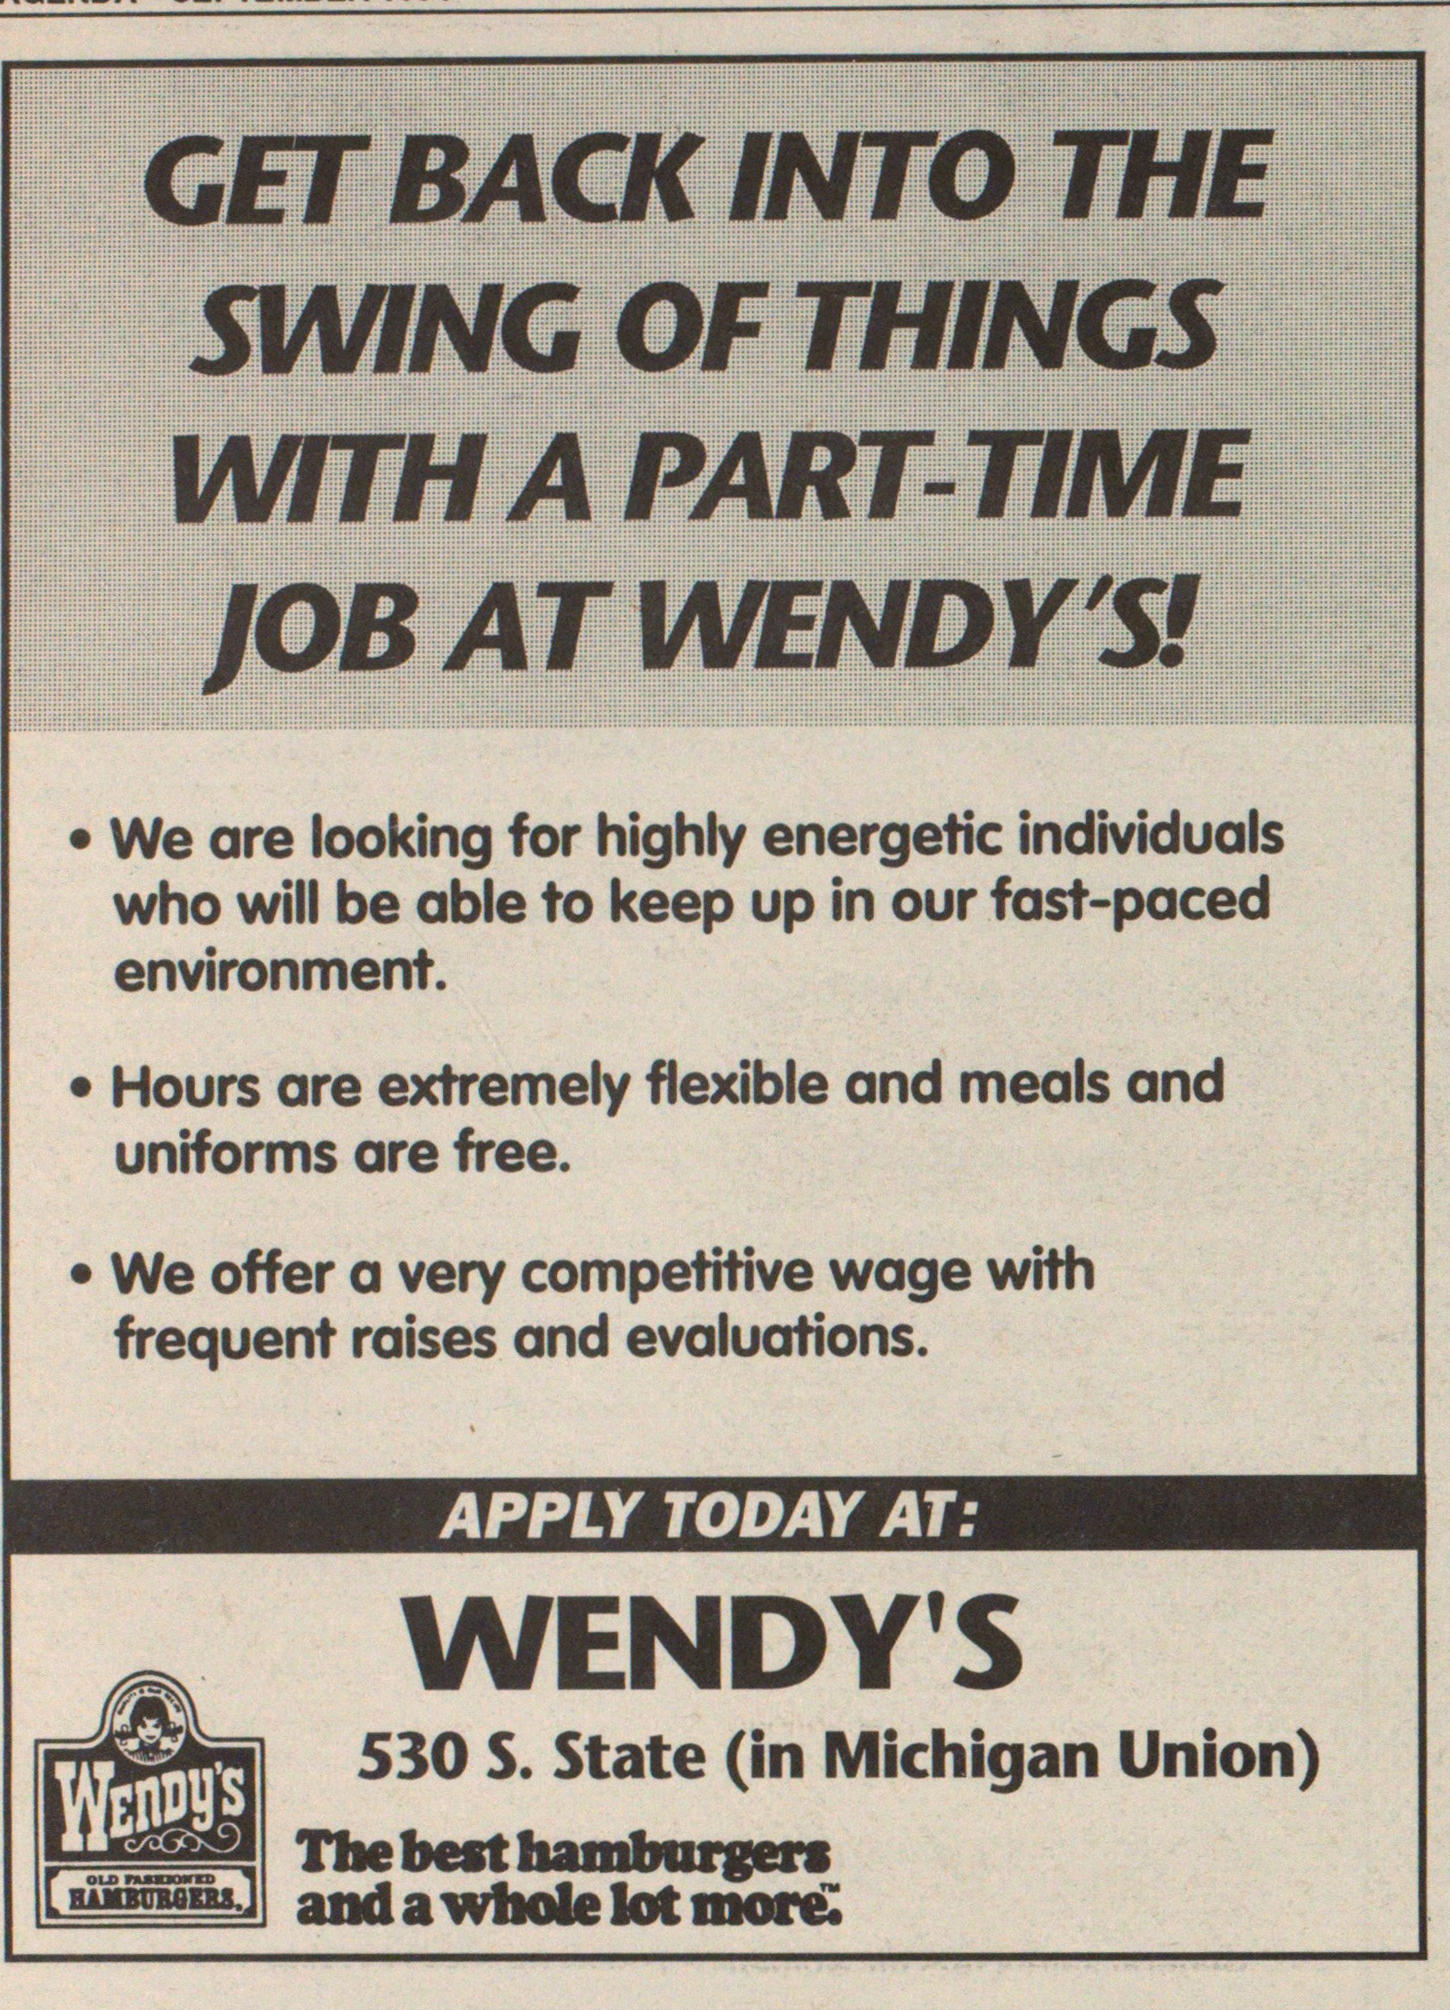 Wendy's image